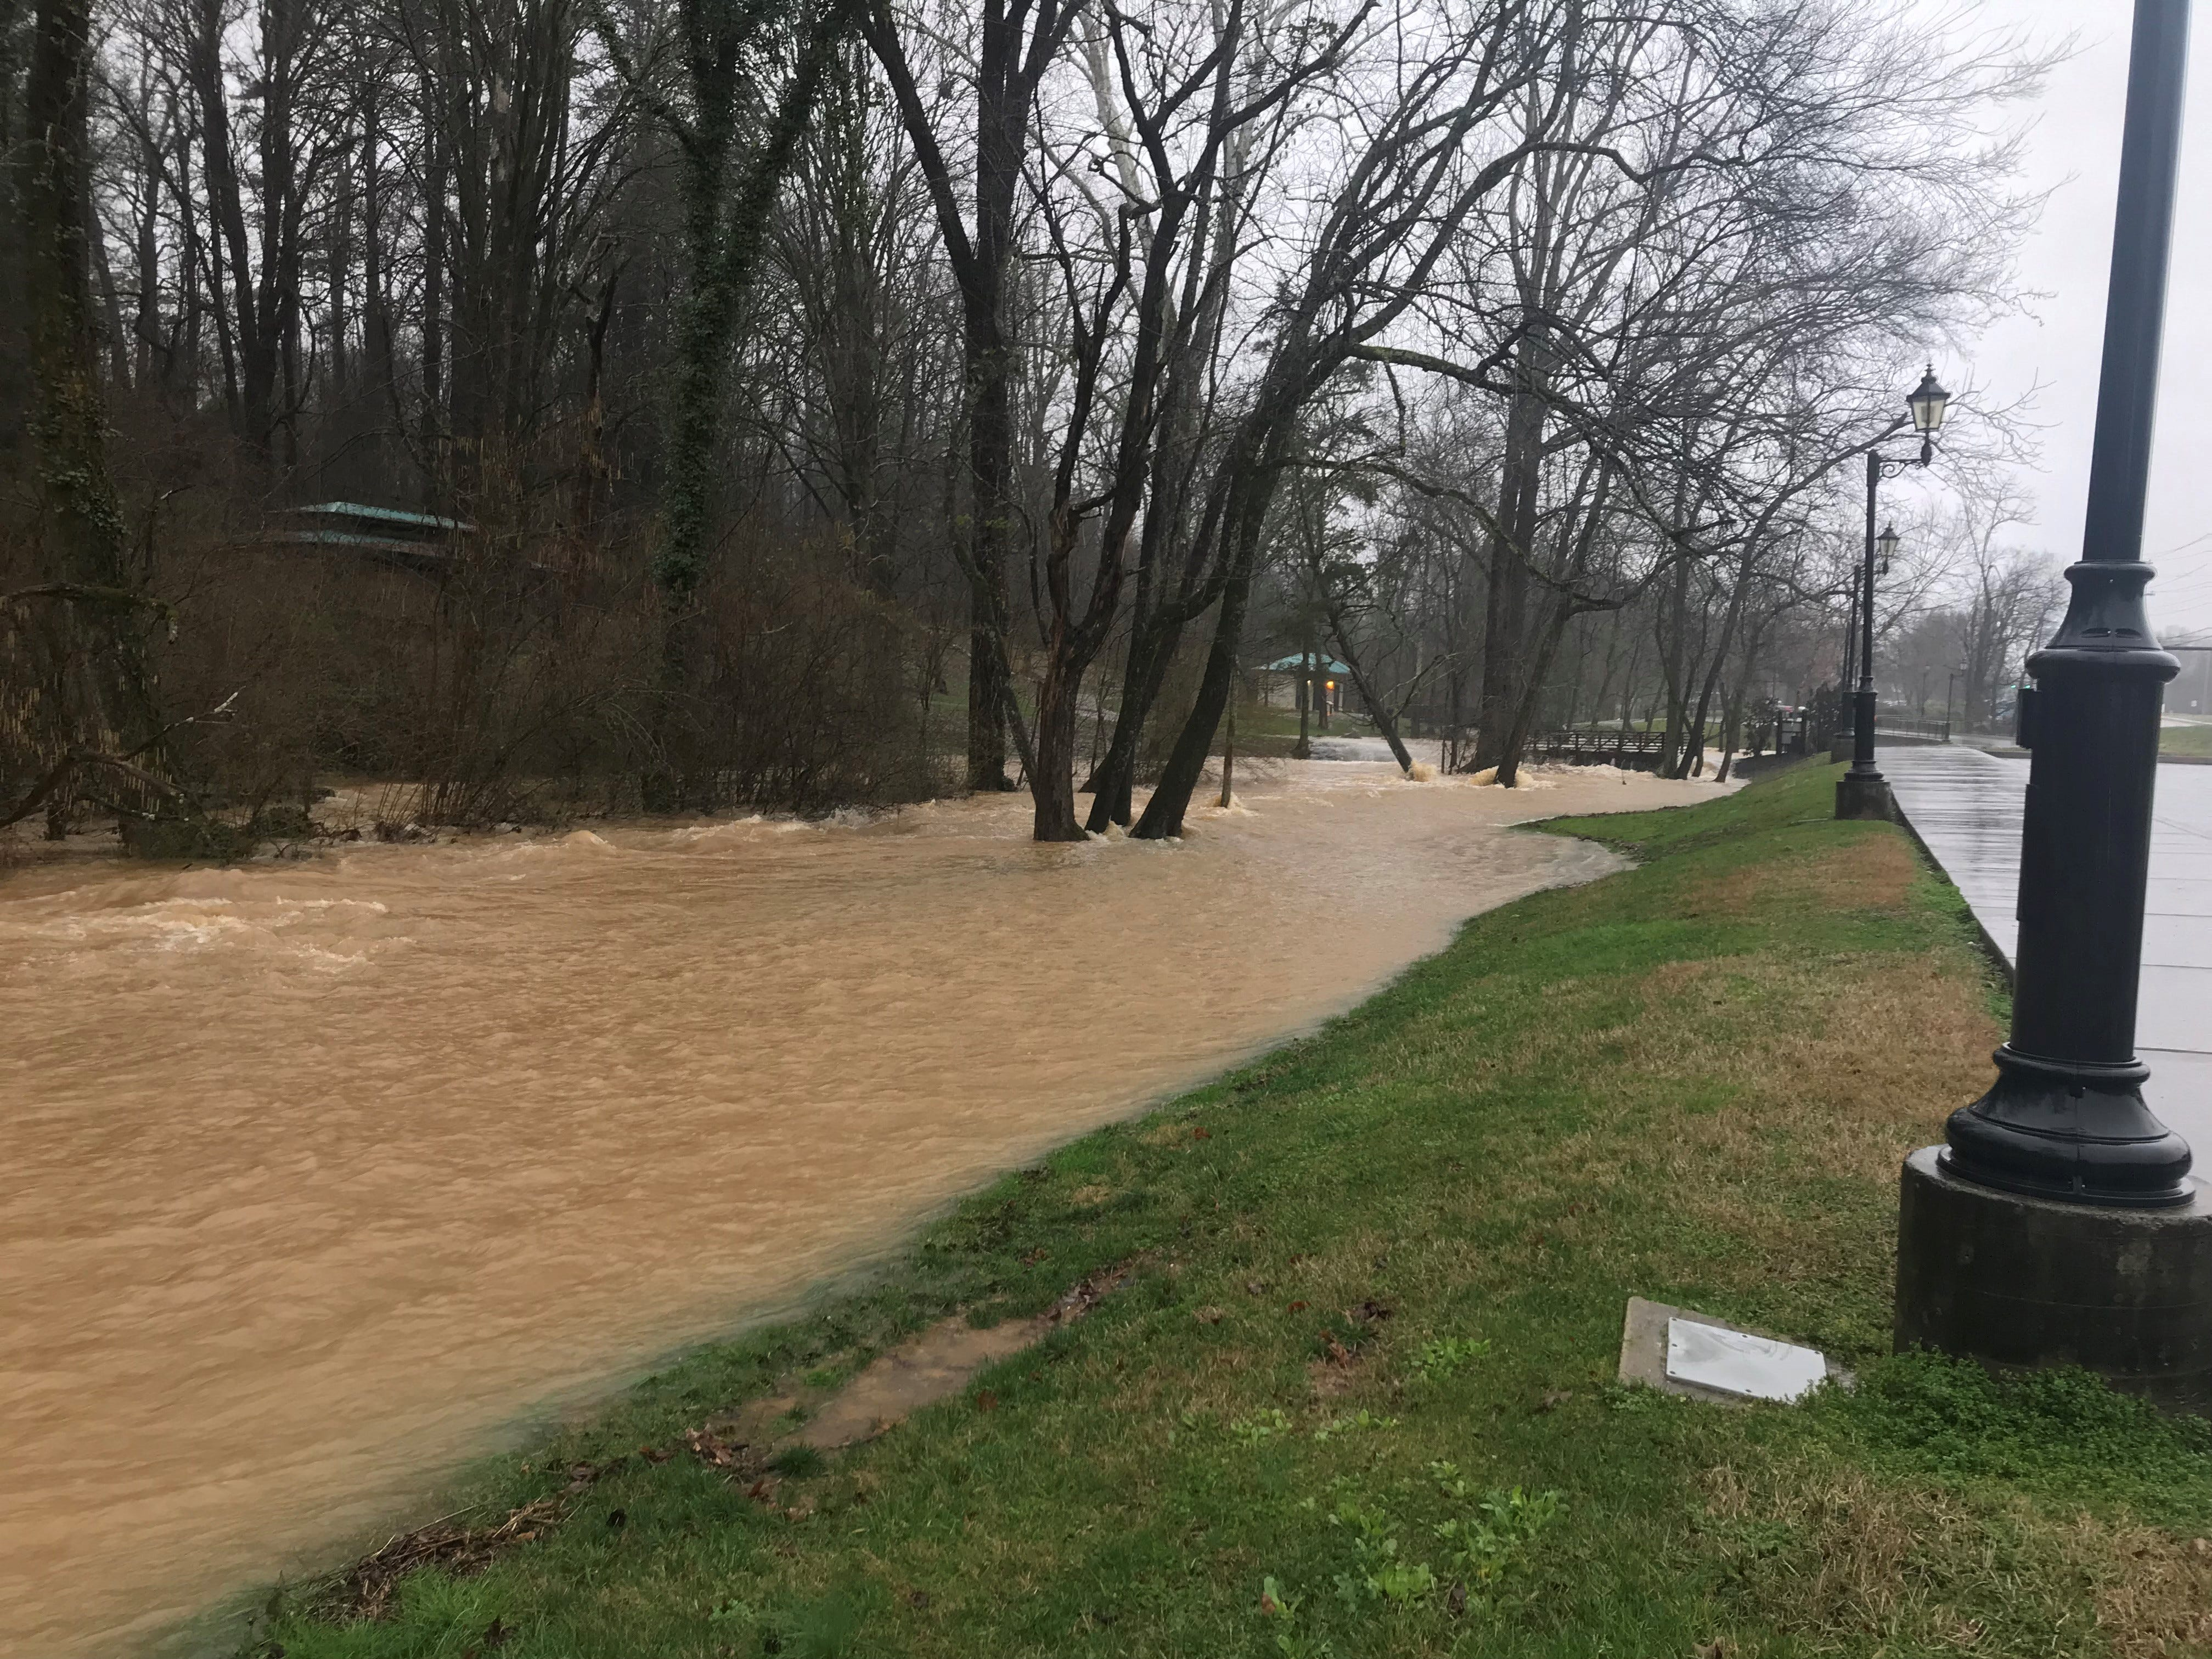 The North Fork of Turkey Creek overflows into Founder's Park in Farragut on Saturday, Feb. 23, 2019.